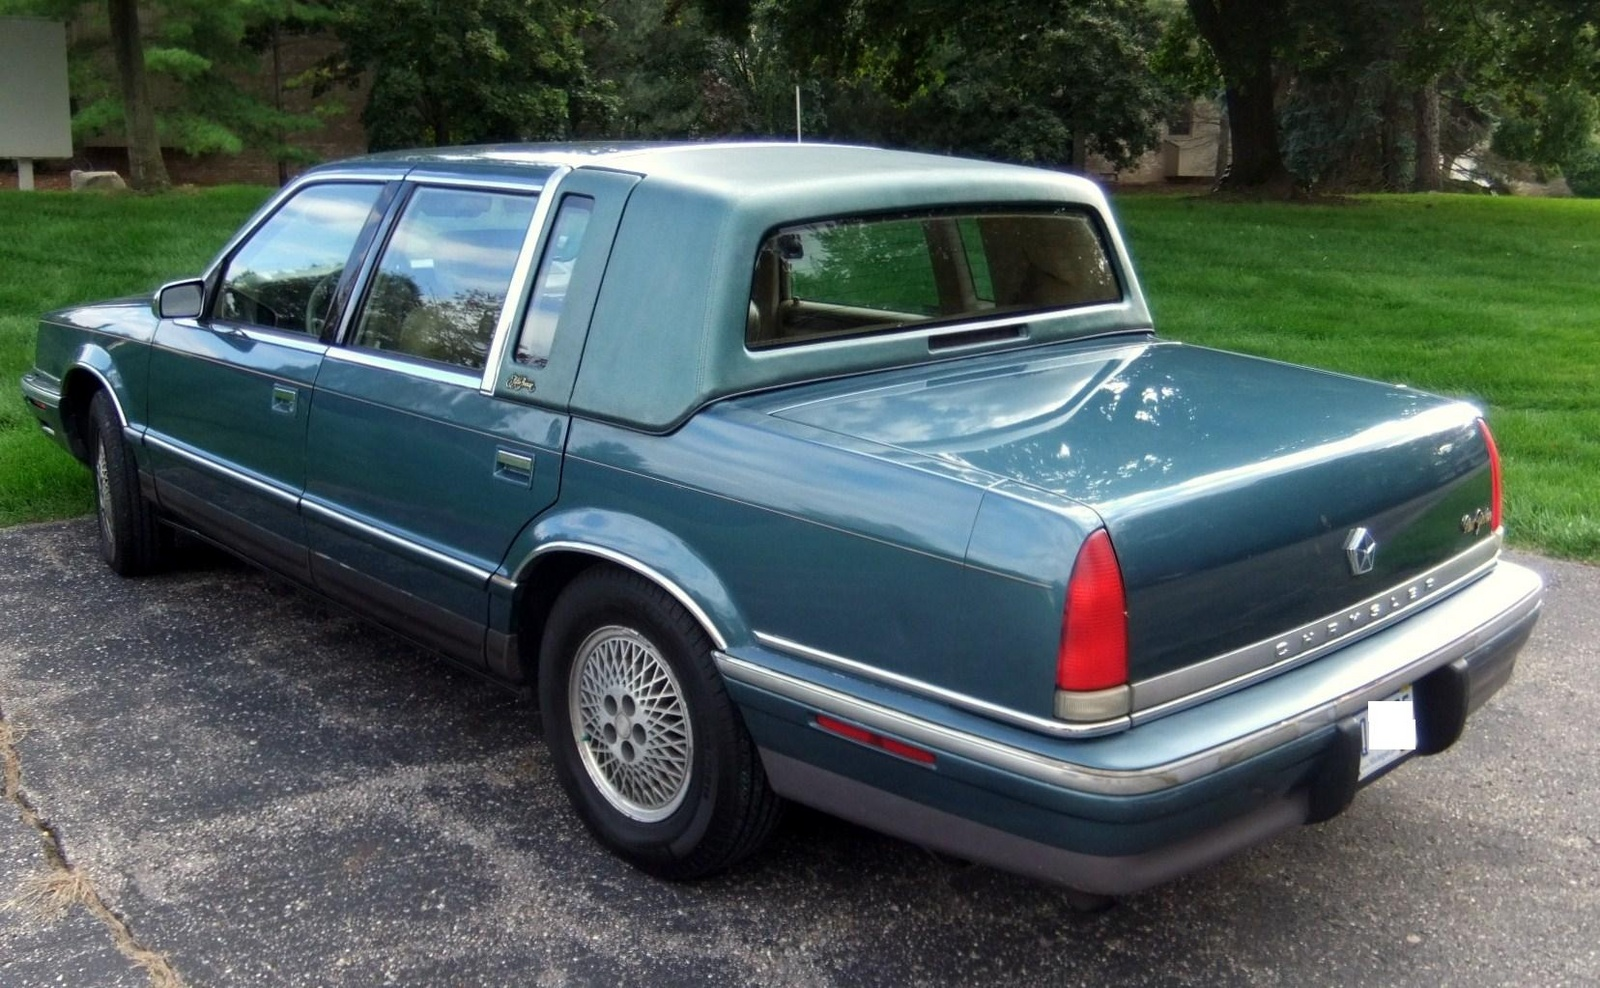 Chrysler new yorker technical specifications and fuel economy for 1993 chrysler new yorker salon sedan